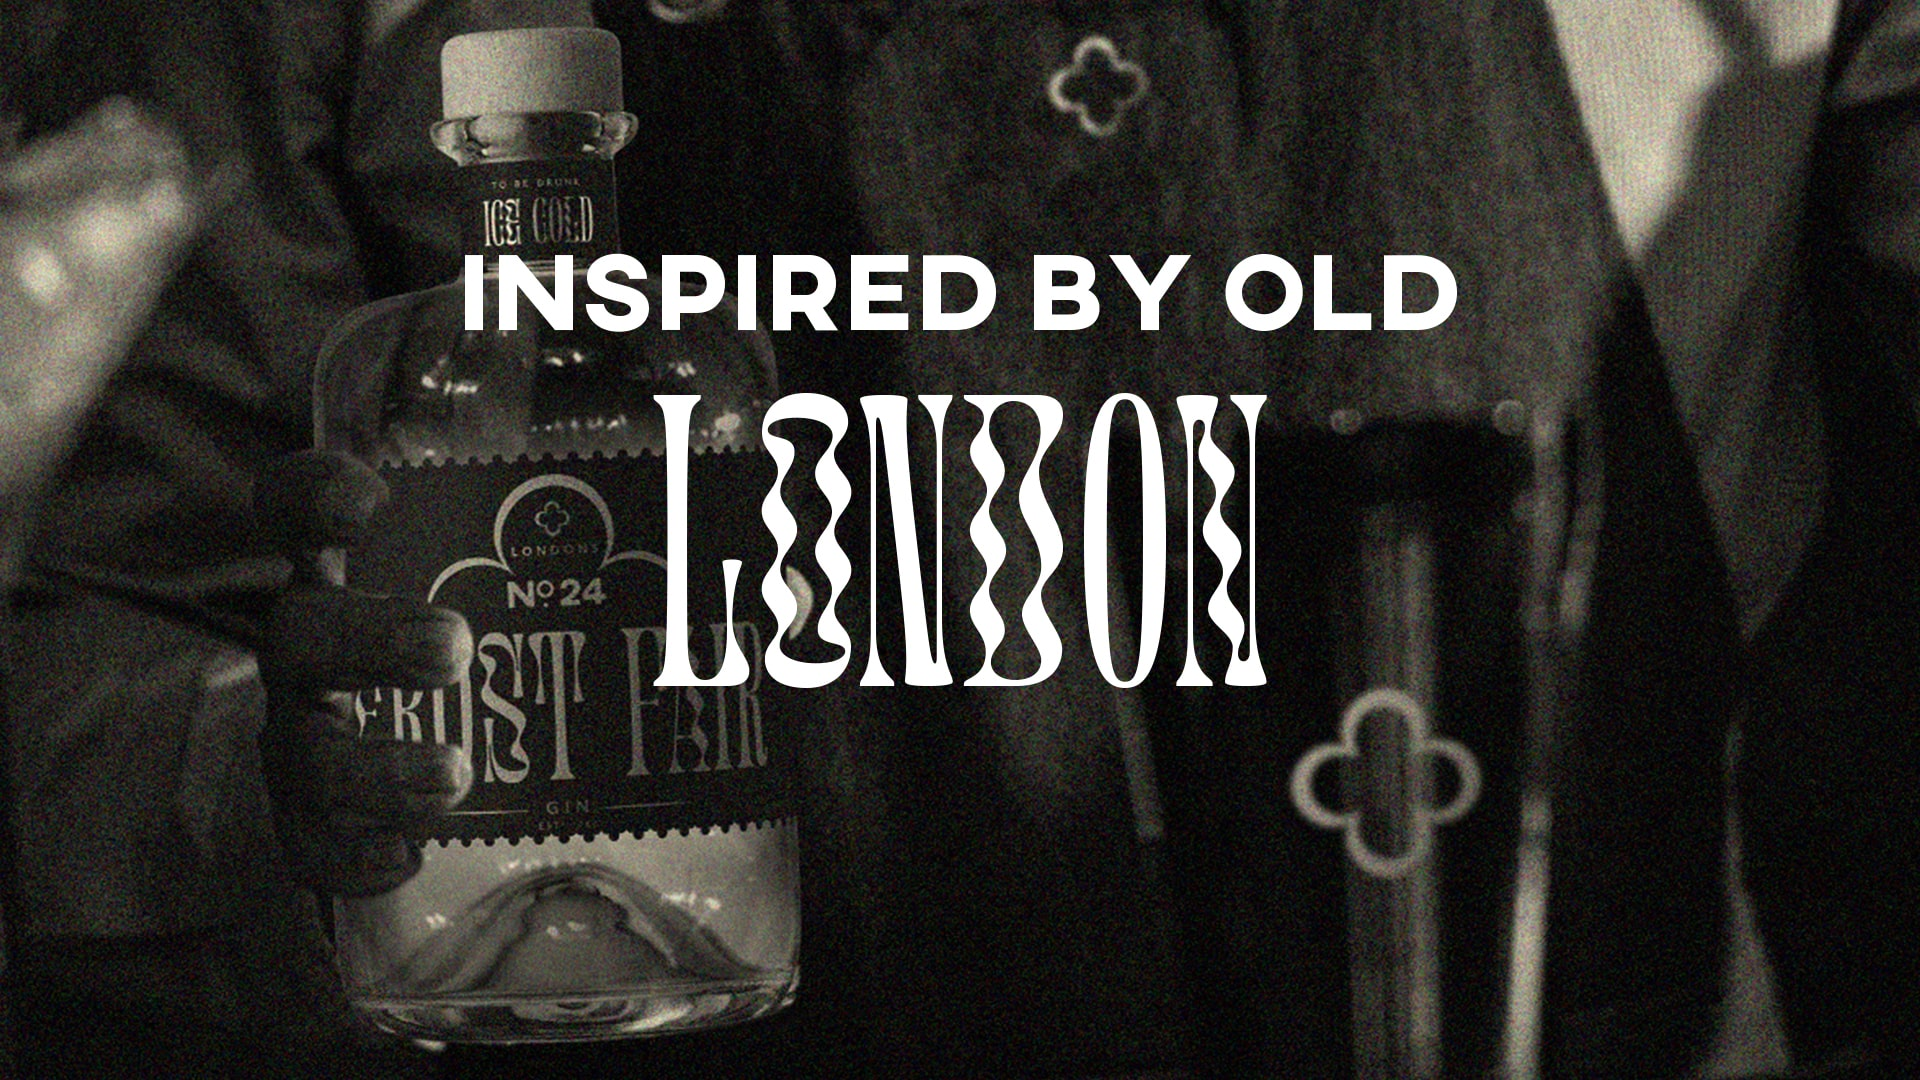 London's No.24 Frost Fair Gin Student Concept by Clare Palmer